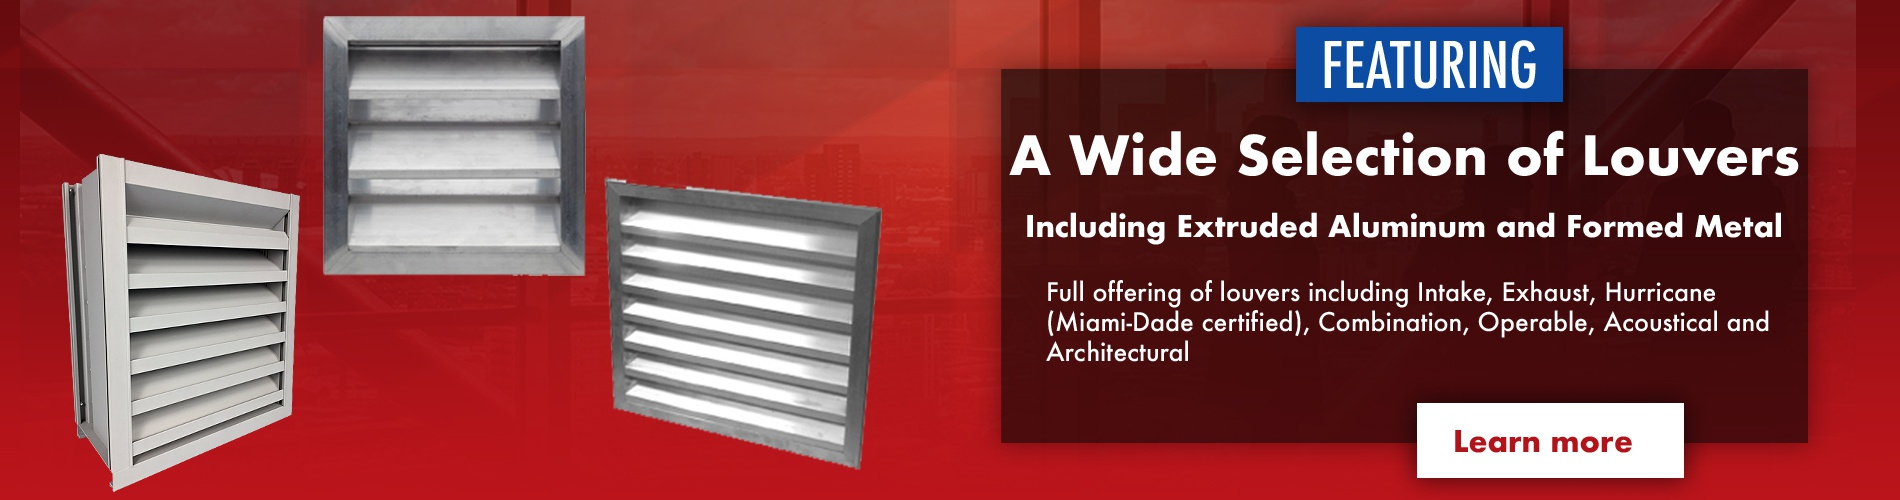 A Wide Selection of Louvers